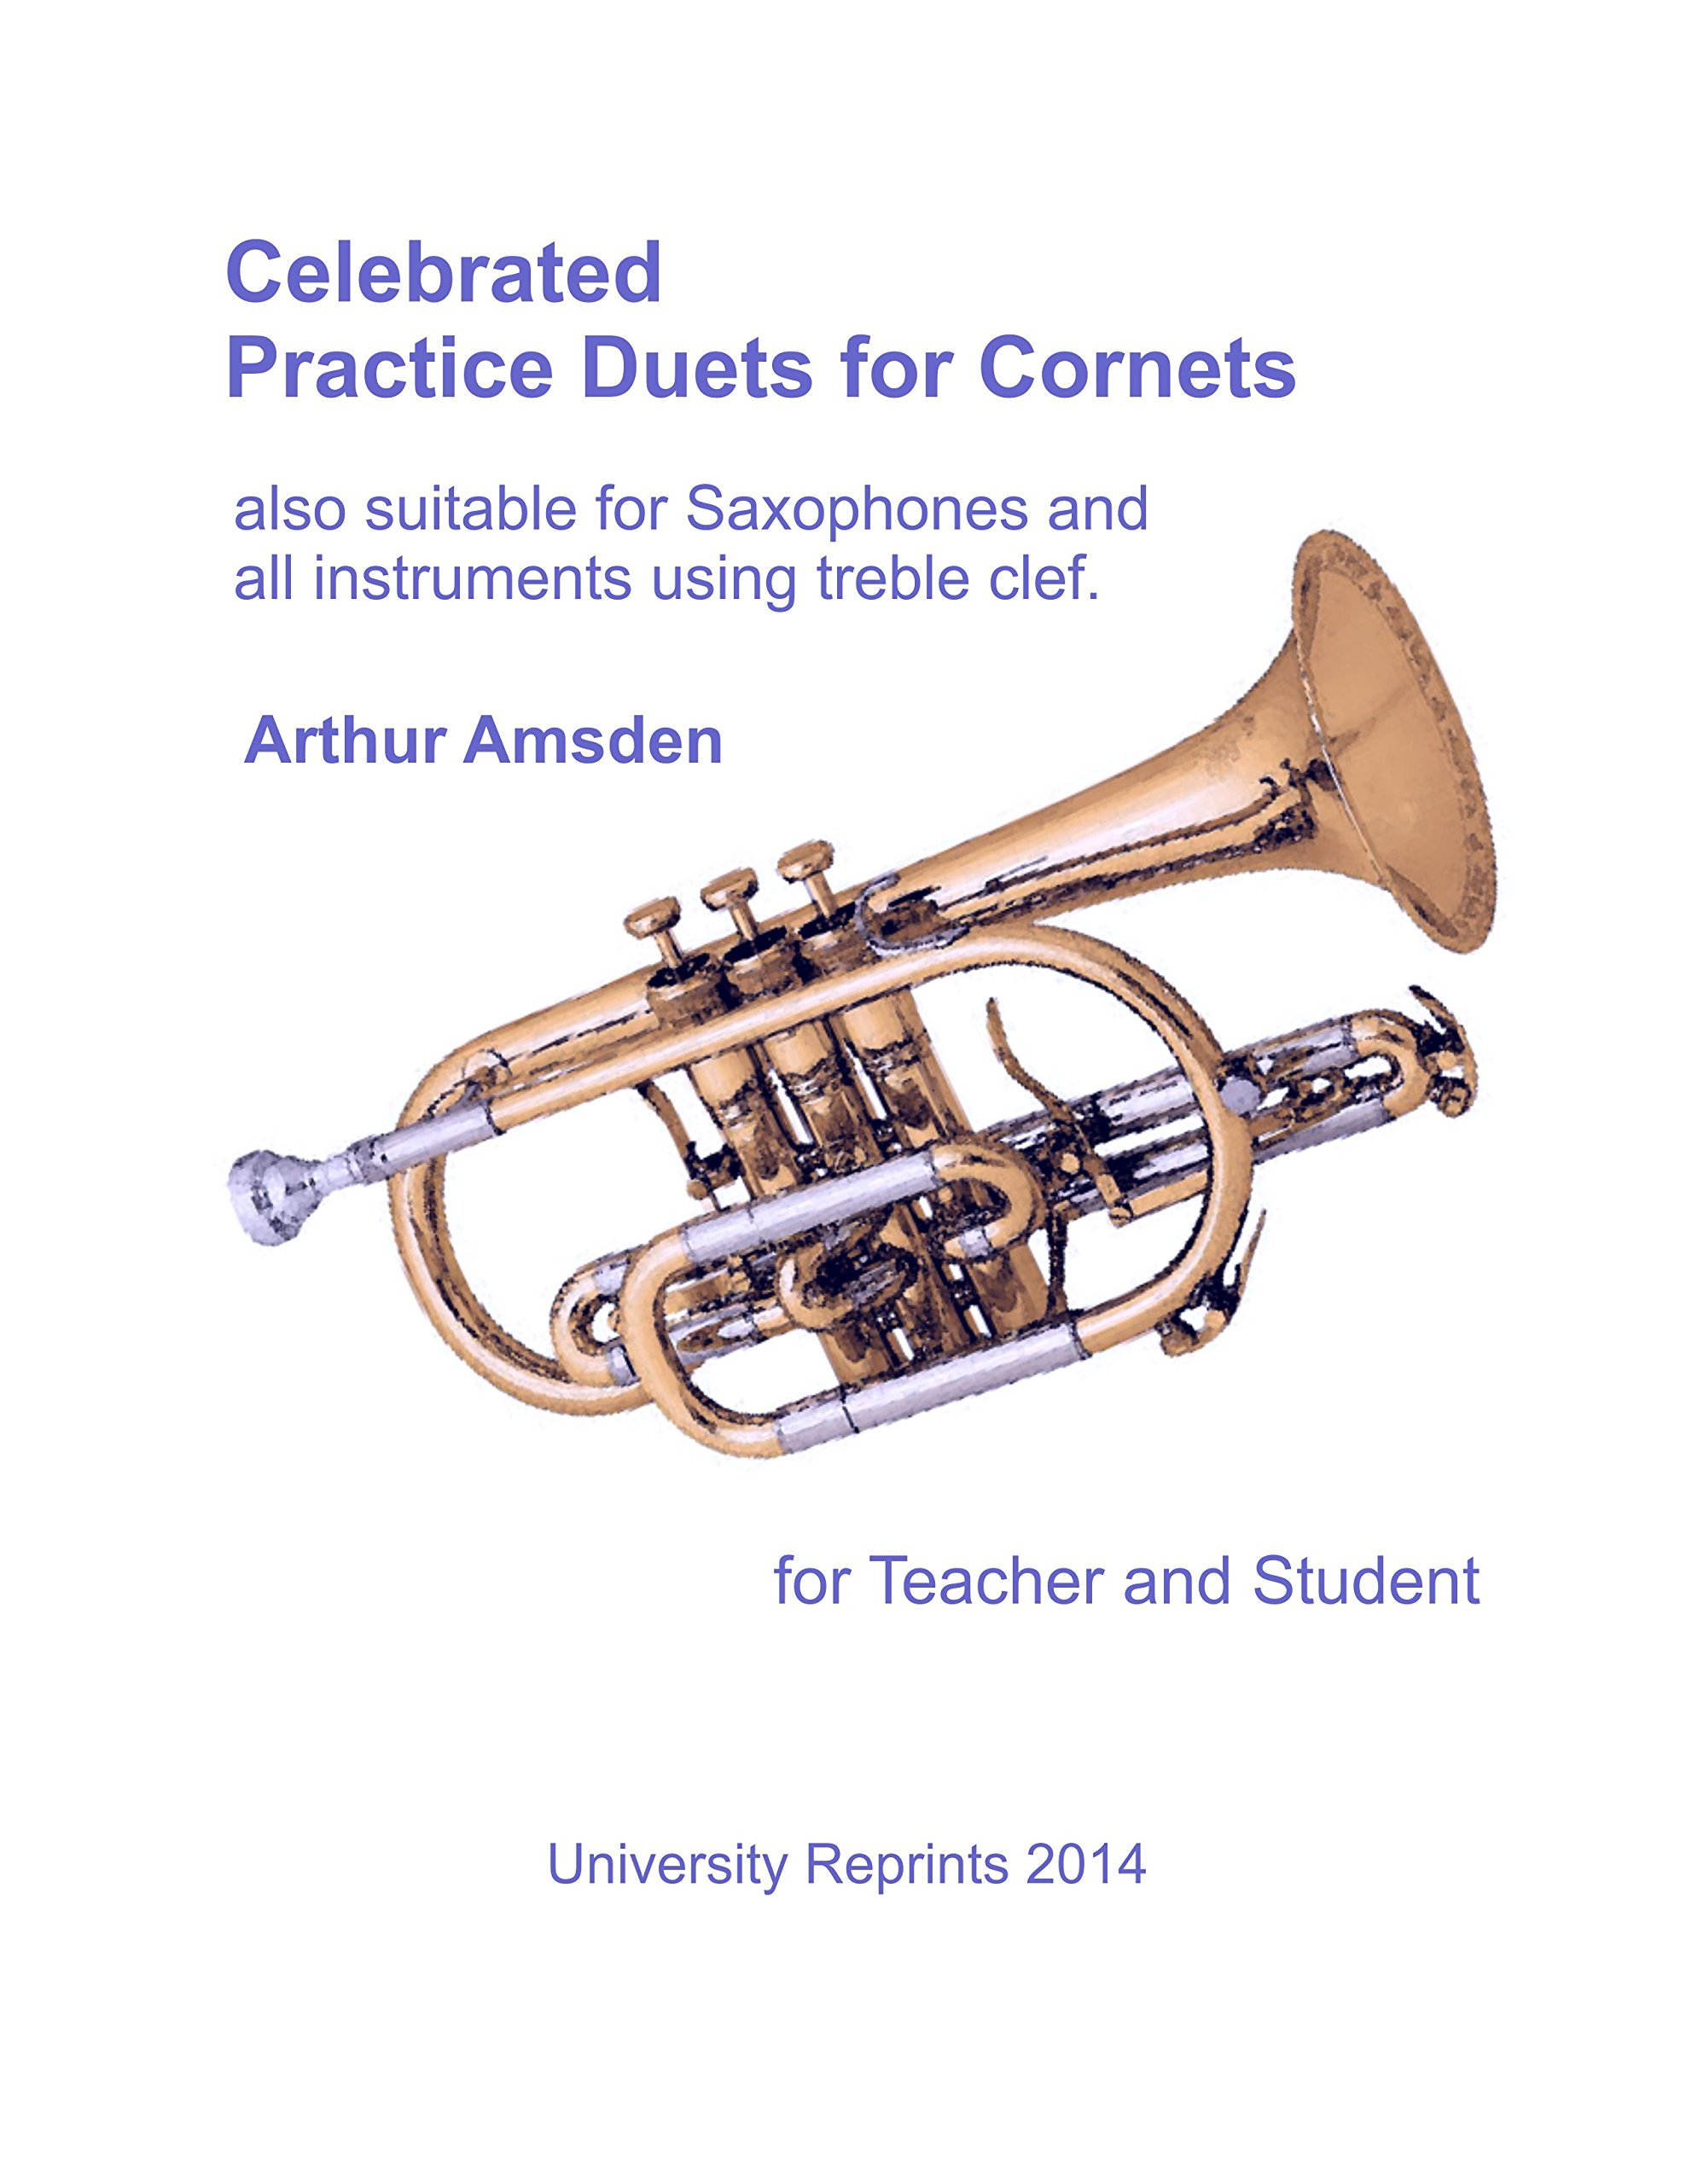 Download Celebrated Practice Duets for Cornets - also suitable for Saxophones and all instruments using treble clef. for Student and Teacher. [Student Loose Leaf Facsimile Edition. Re-Imaged from Original for Greater Clarity. 2014] pdf